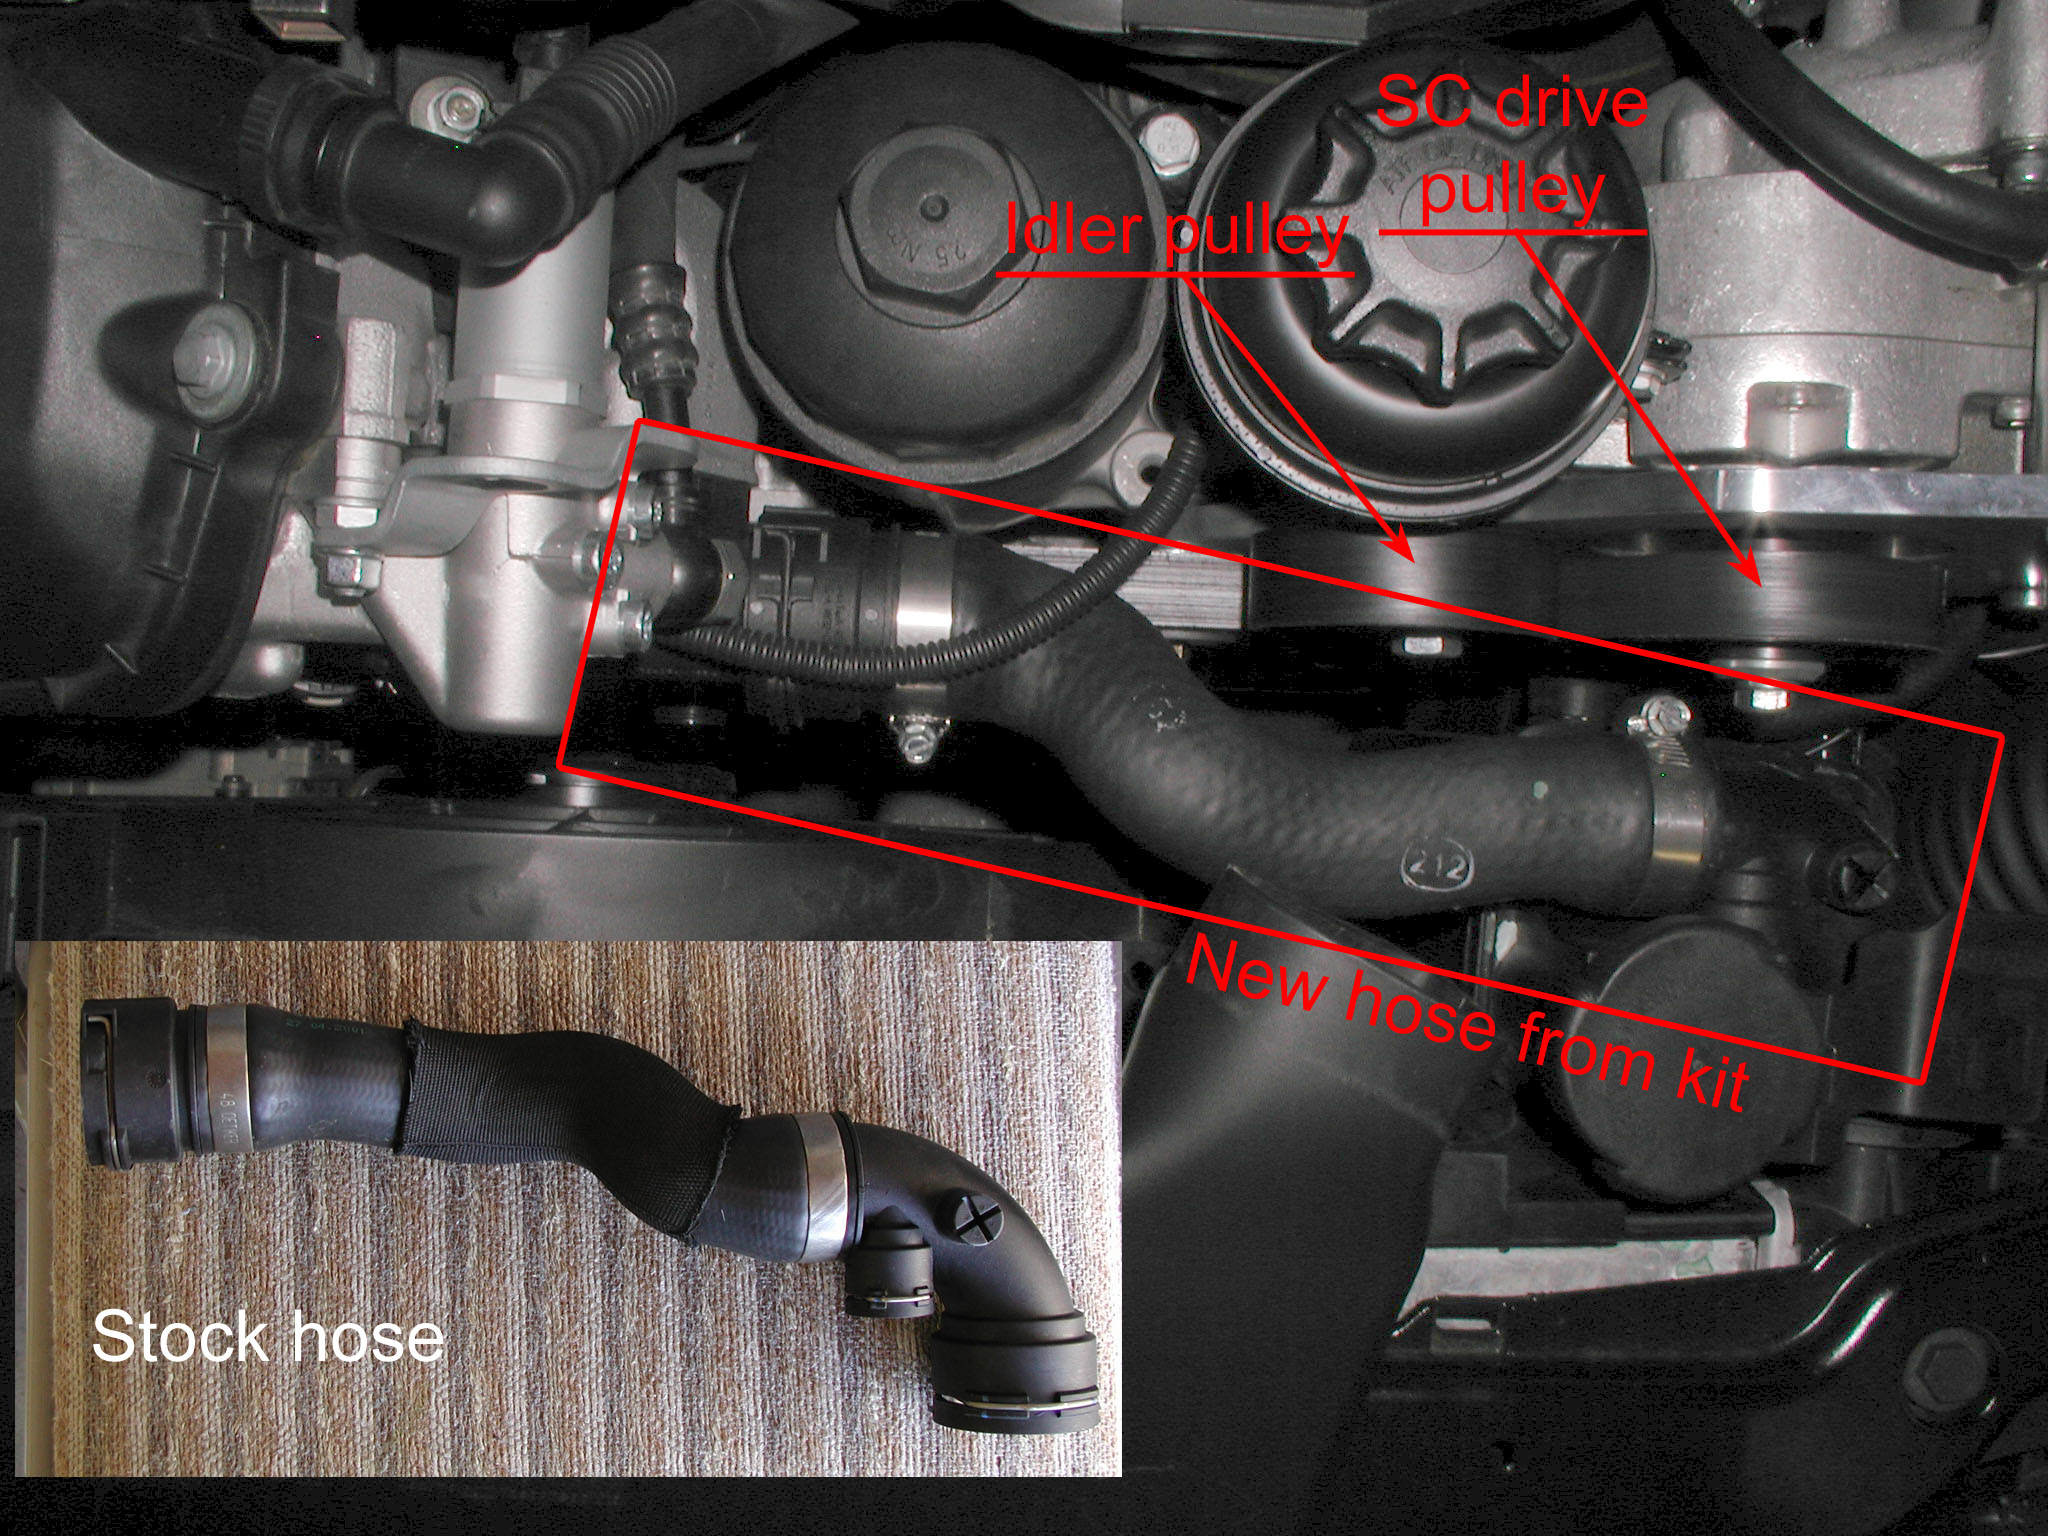 RADIATOR HOSE - UPPER AND LOWER RADIATOR HOSE REPLACEMENT